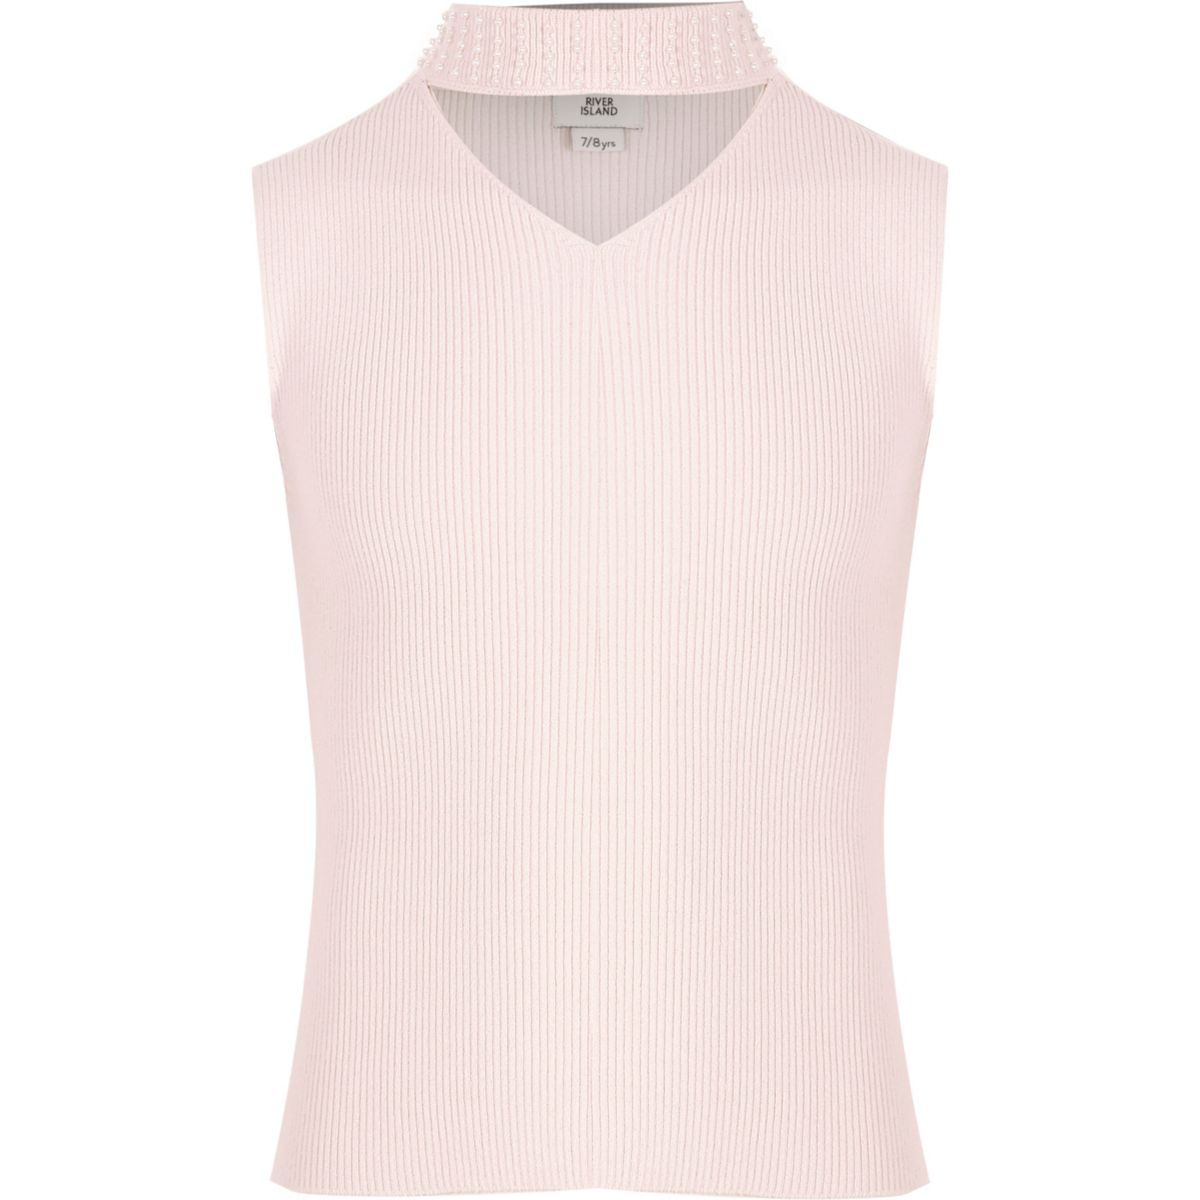 Girls Pink Rib Knit Embellished Choker Top